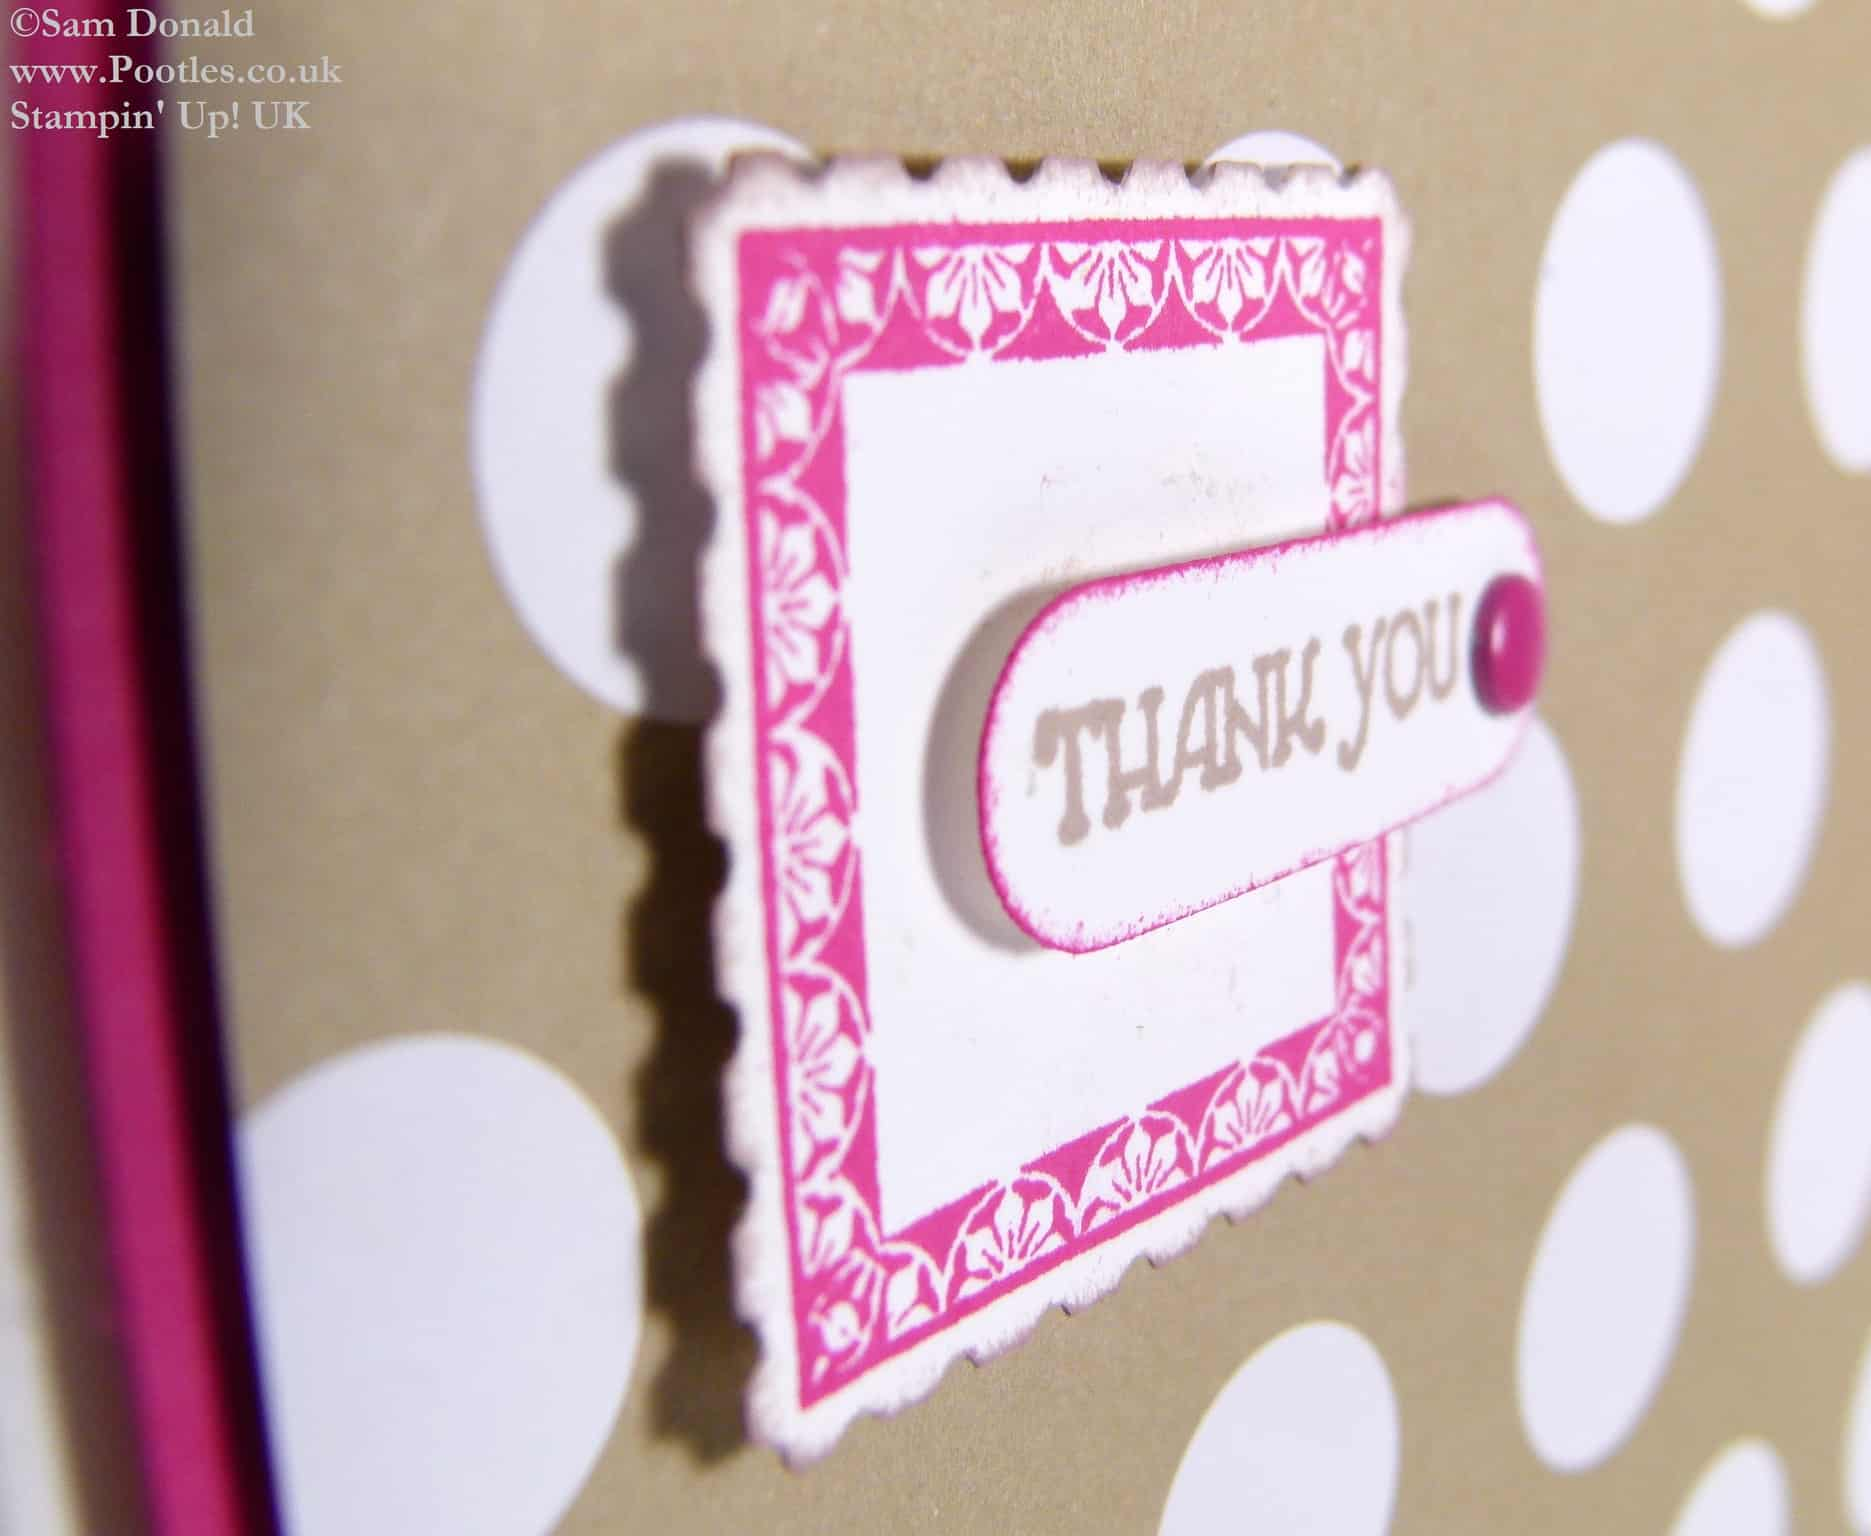 POOTLES Stampin Up UK Melon Mambo Postage Thank You Card